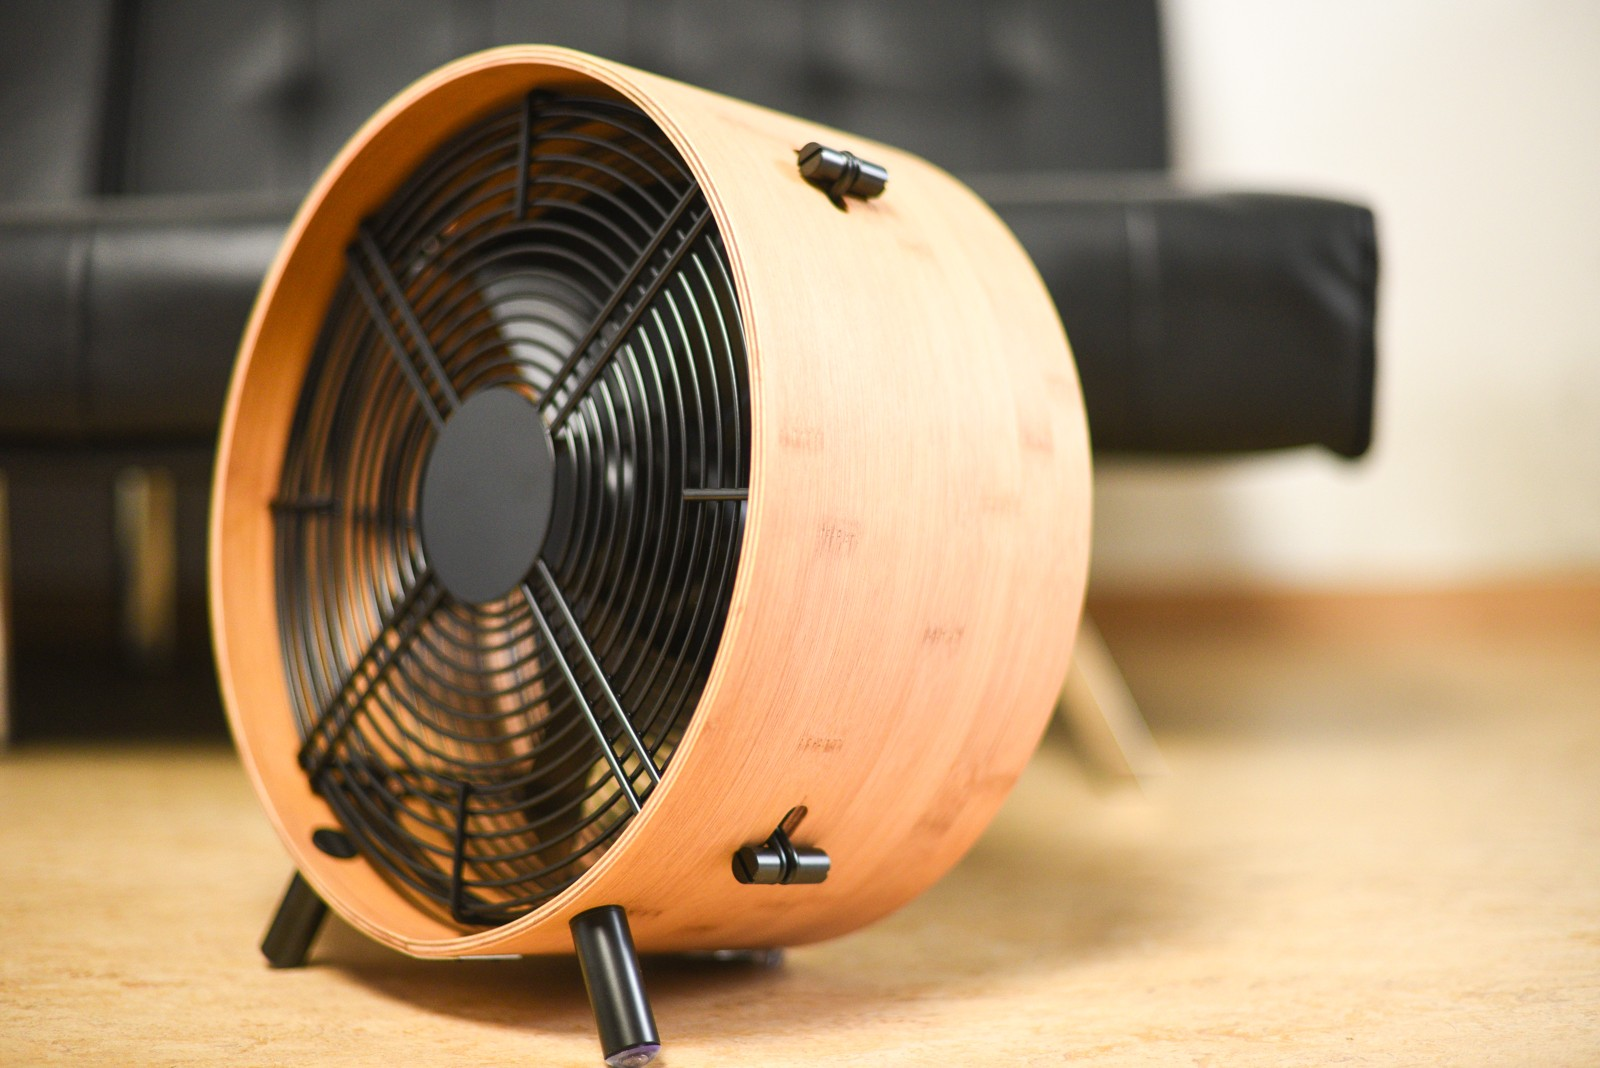 Stadler Form Fan Otto Bamboo For 40 M 178 Rooms Portable Fans